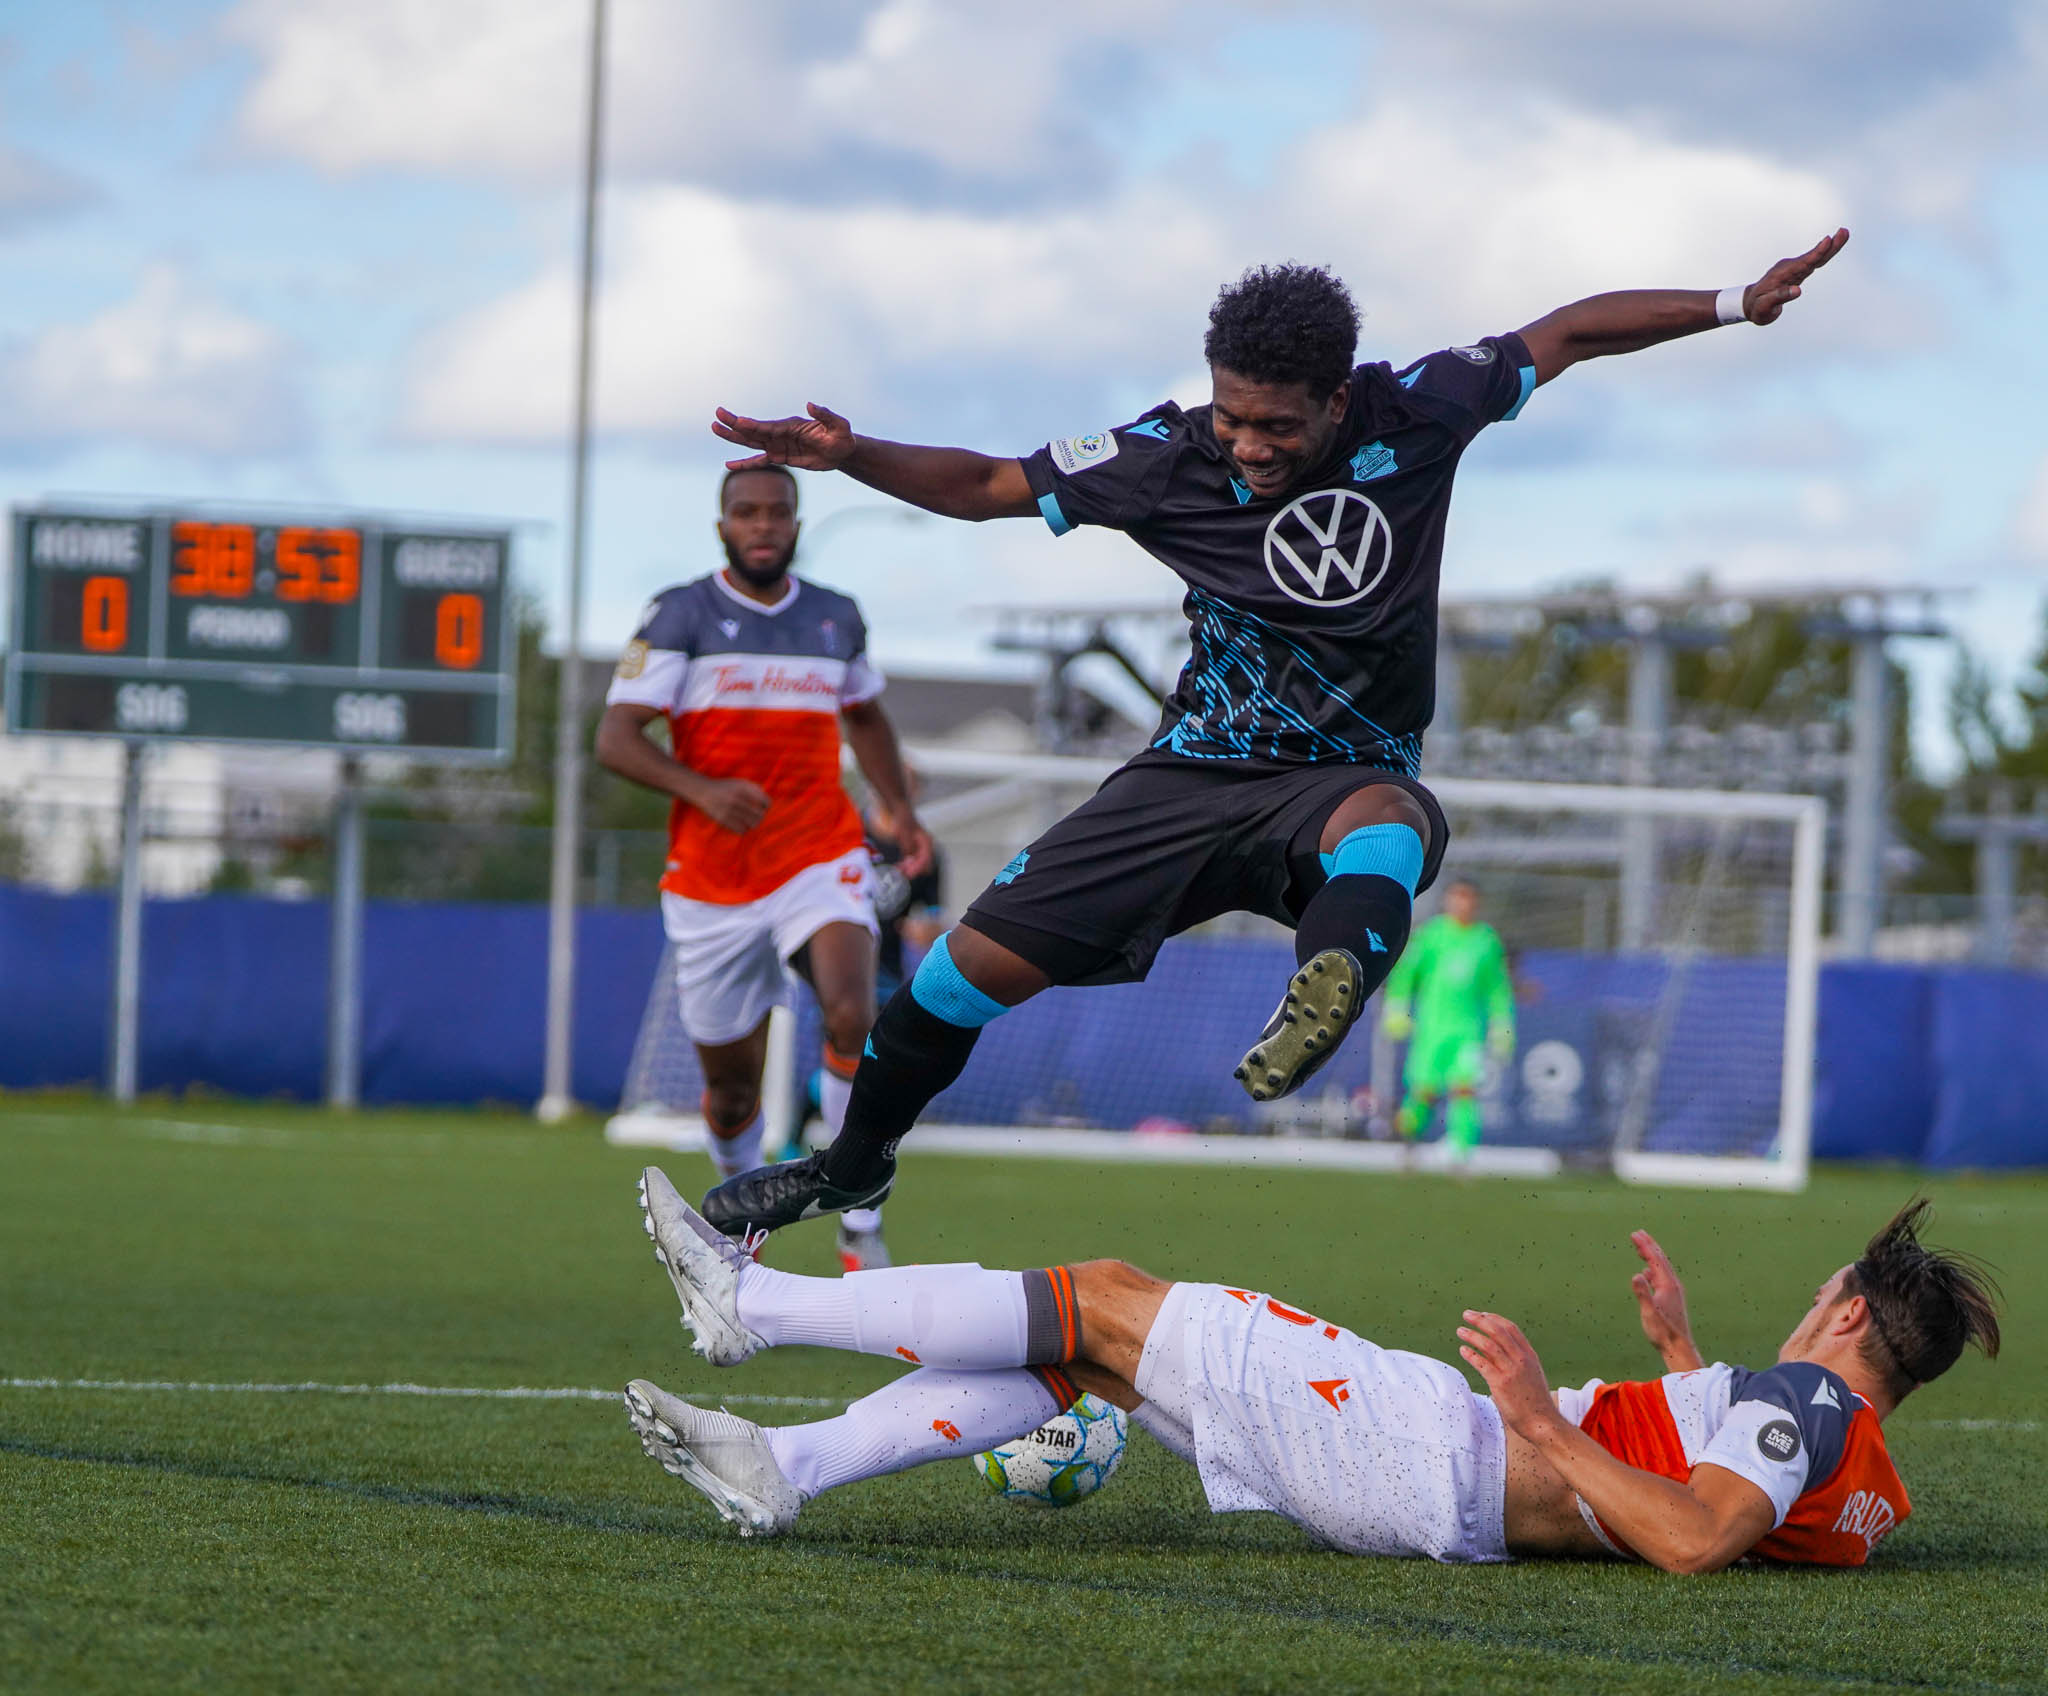 HFX Wanderers attacker Akeem Garcia evades a tackle from Forge FC's Daniel Krutzen. (CPL/Chant Photography)